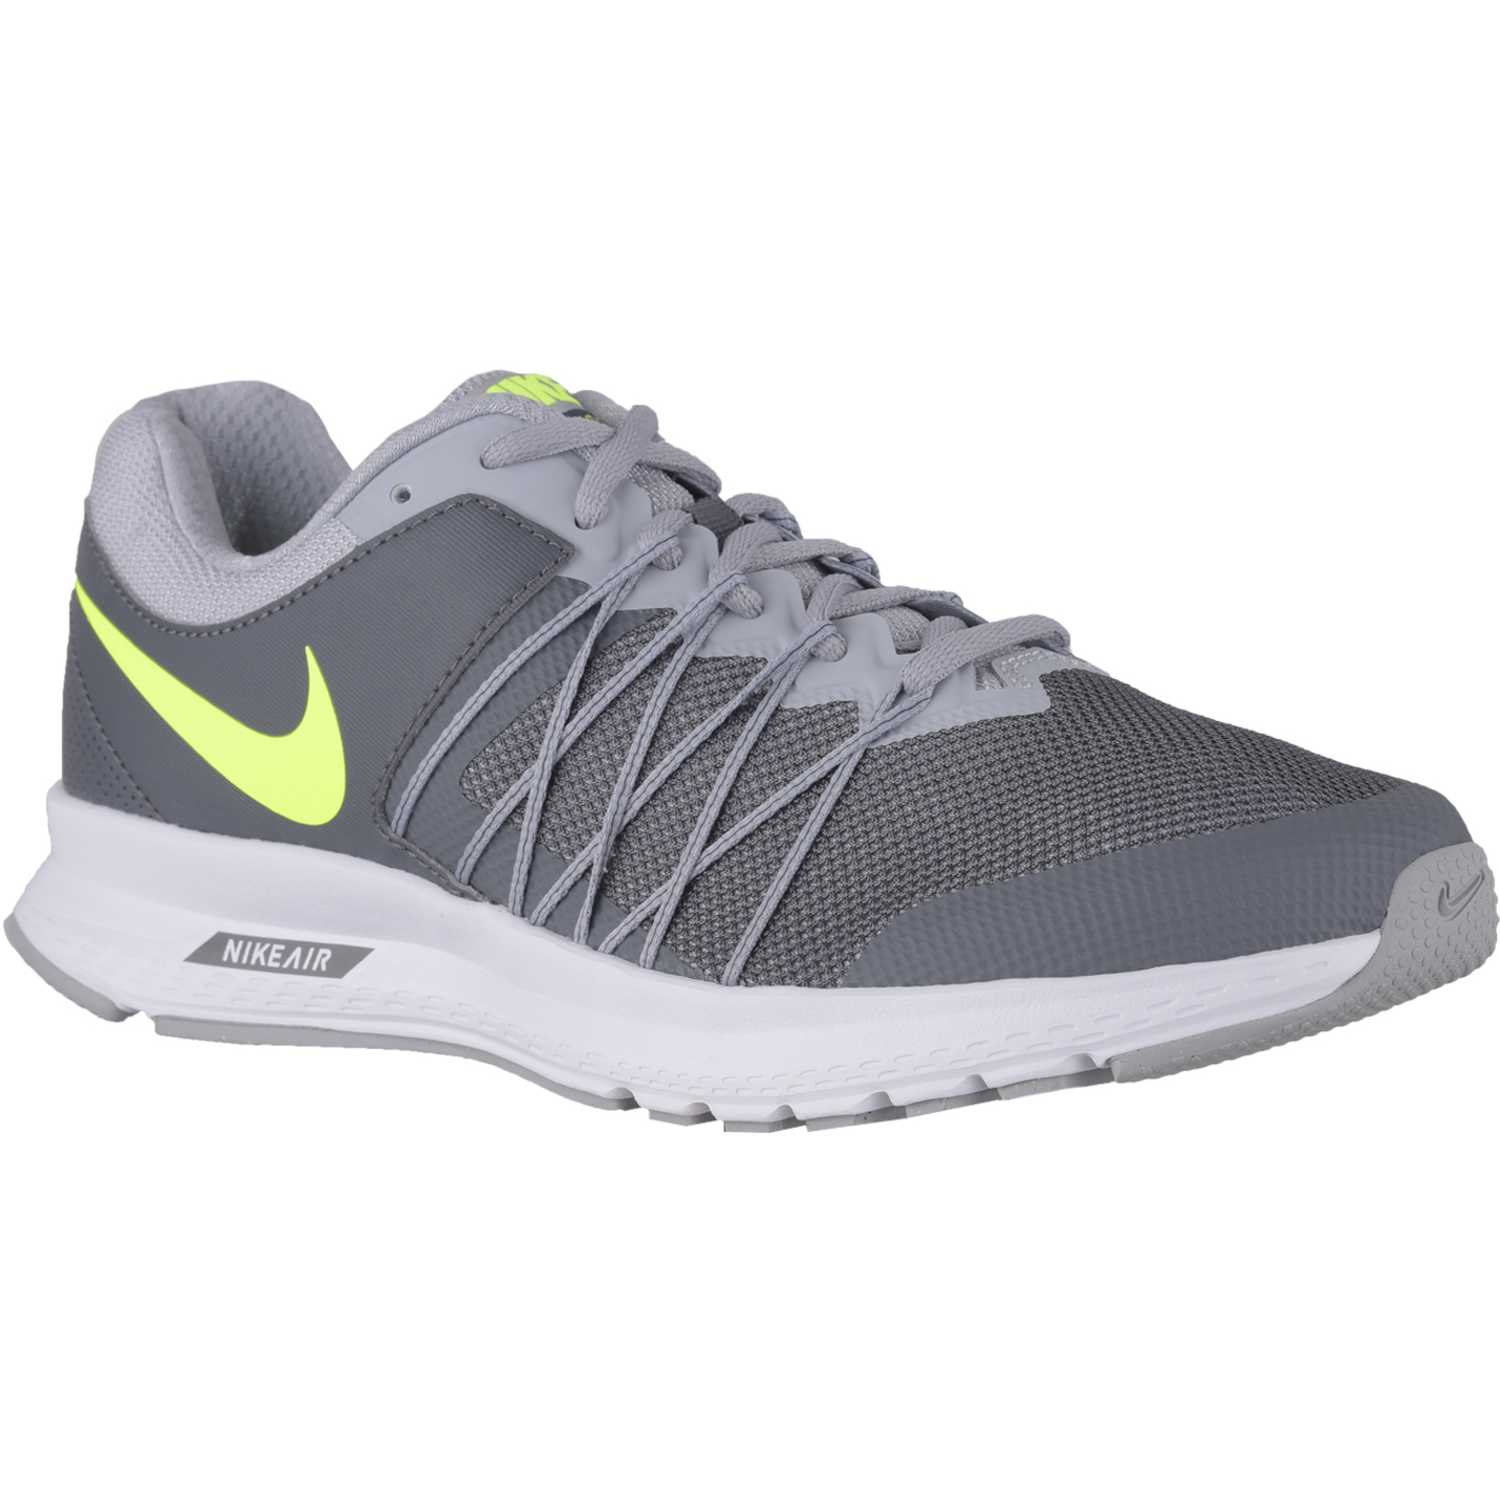 new product 39ecf 5a0fe Zapatilla de Hombre Nike Gris   Blanco air relentless 6 msl